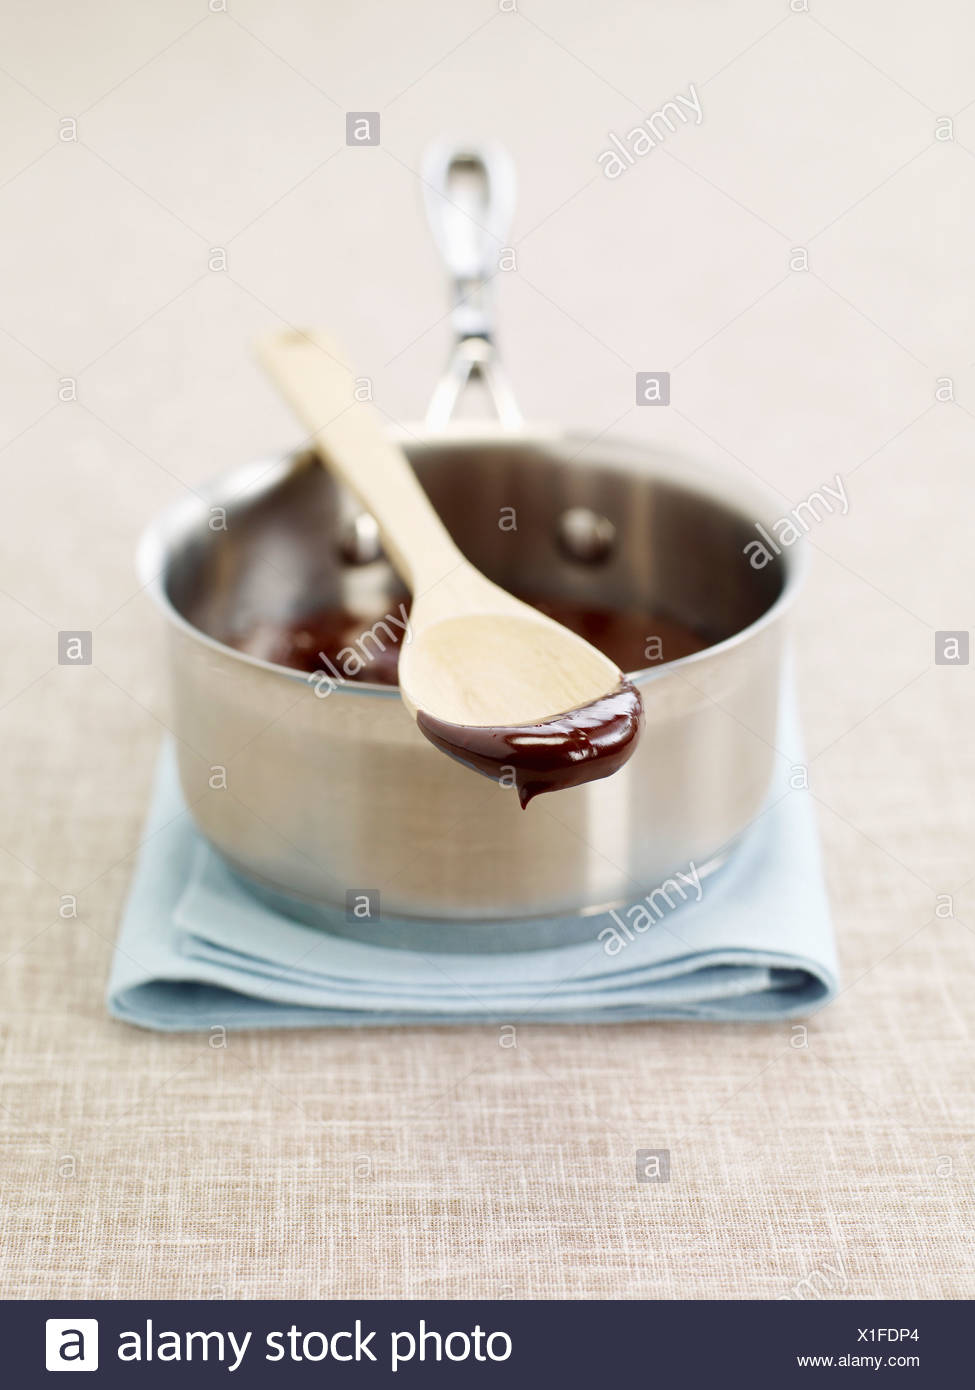 Melted chocolate in a saucepan - Stock Image